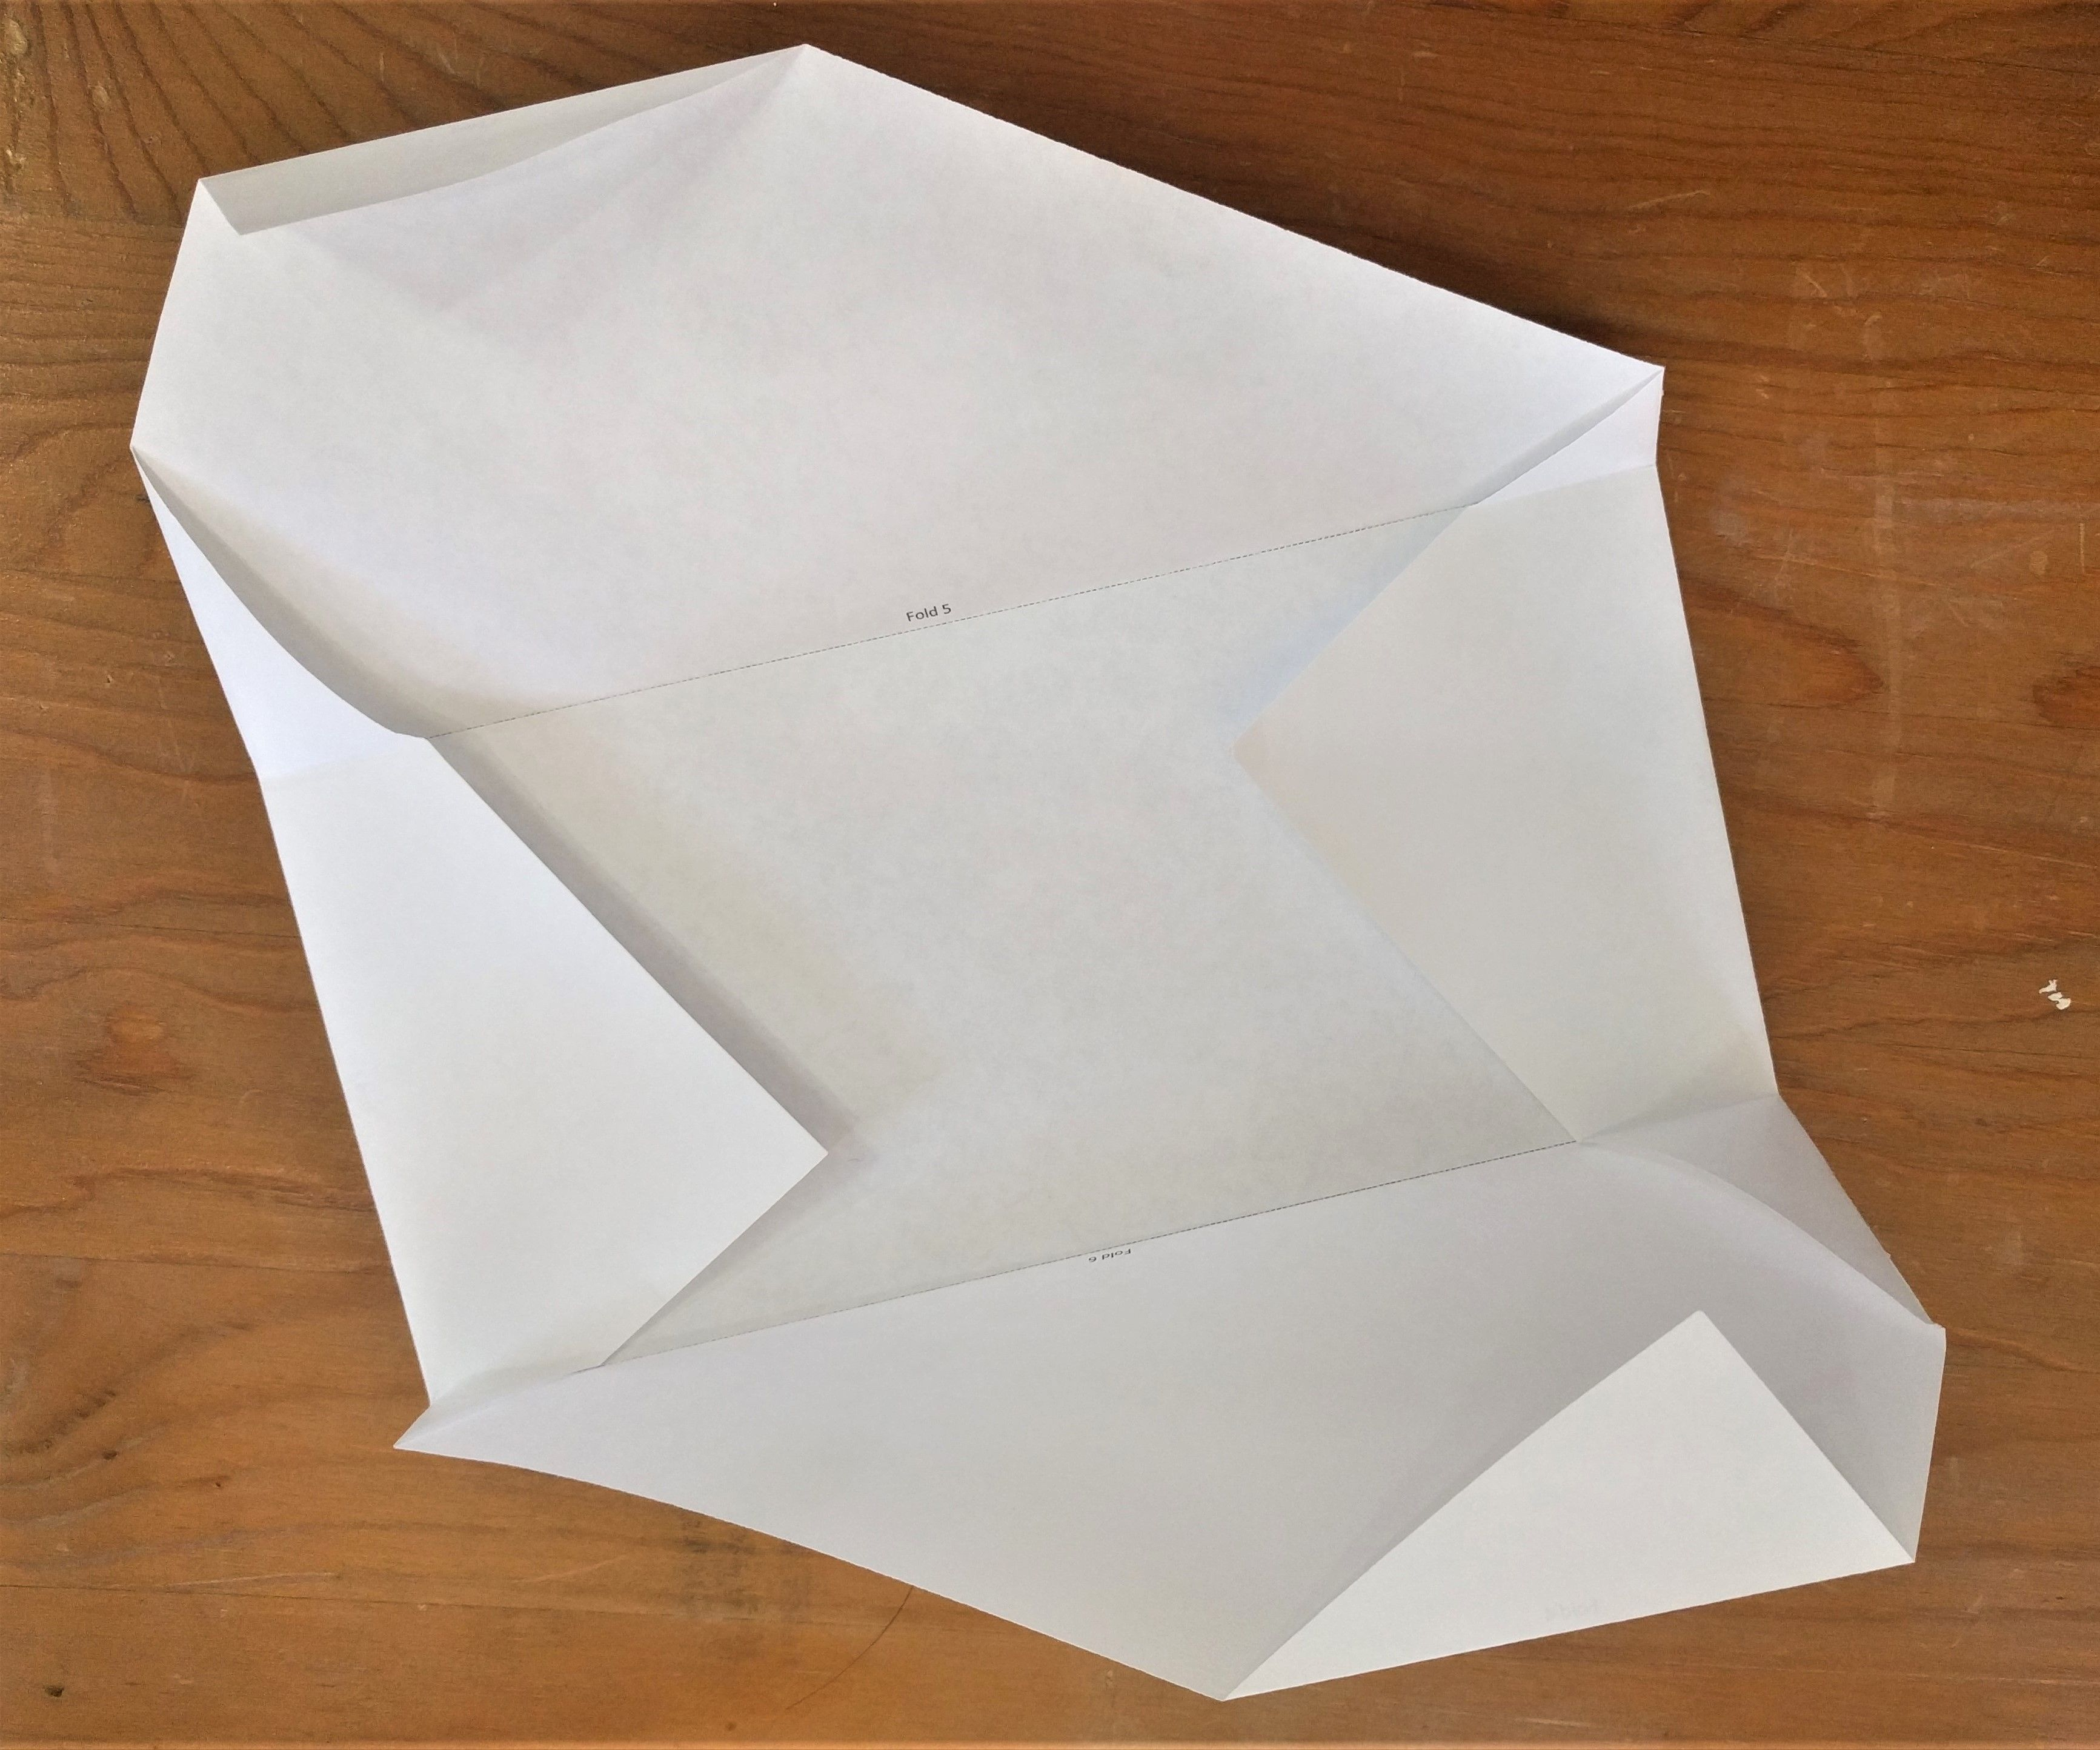 DIY - Fold Letter Envelopes From an 8 ½  X 11 Sheet of Paper